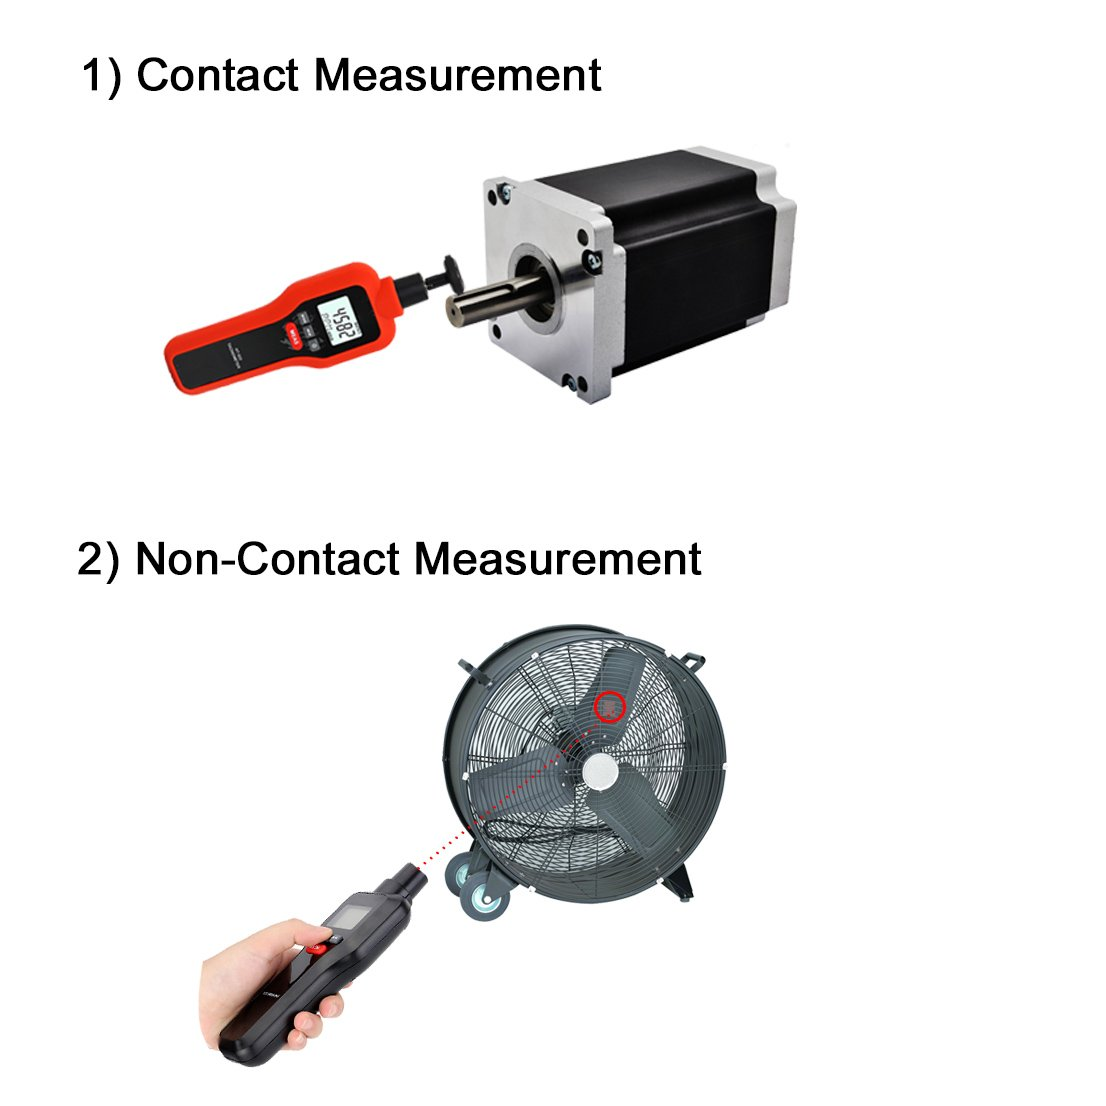 Mengshen 2 in 1 Non-Contact /& Contact Speed Meter Rotation Tester M522 Digital Tachometer